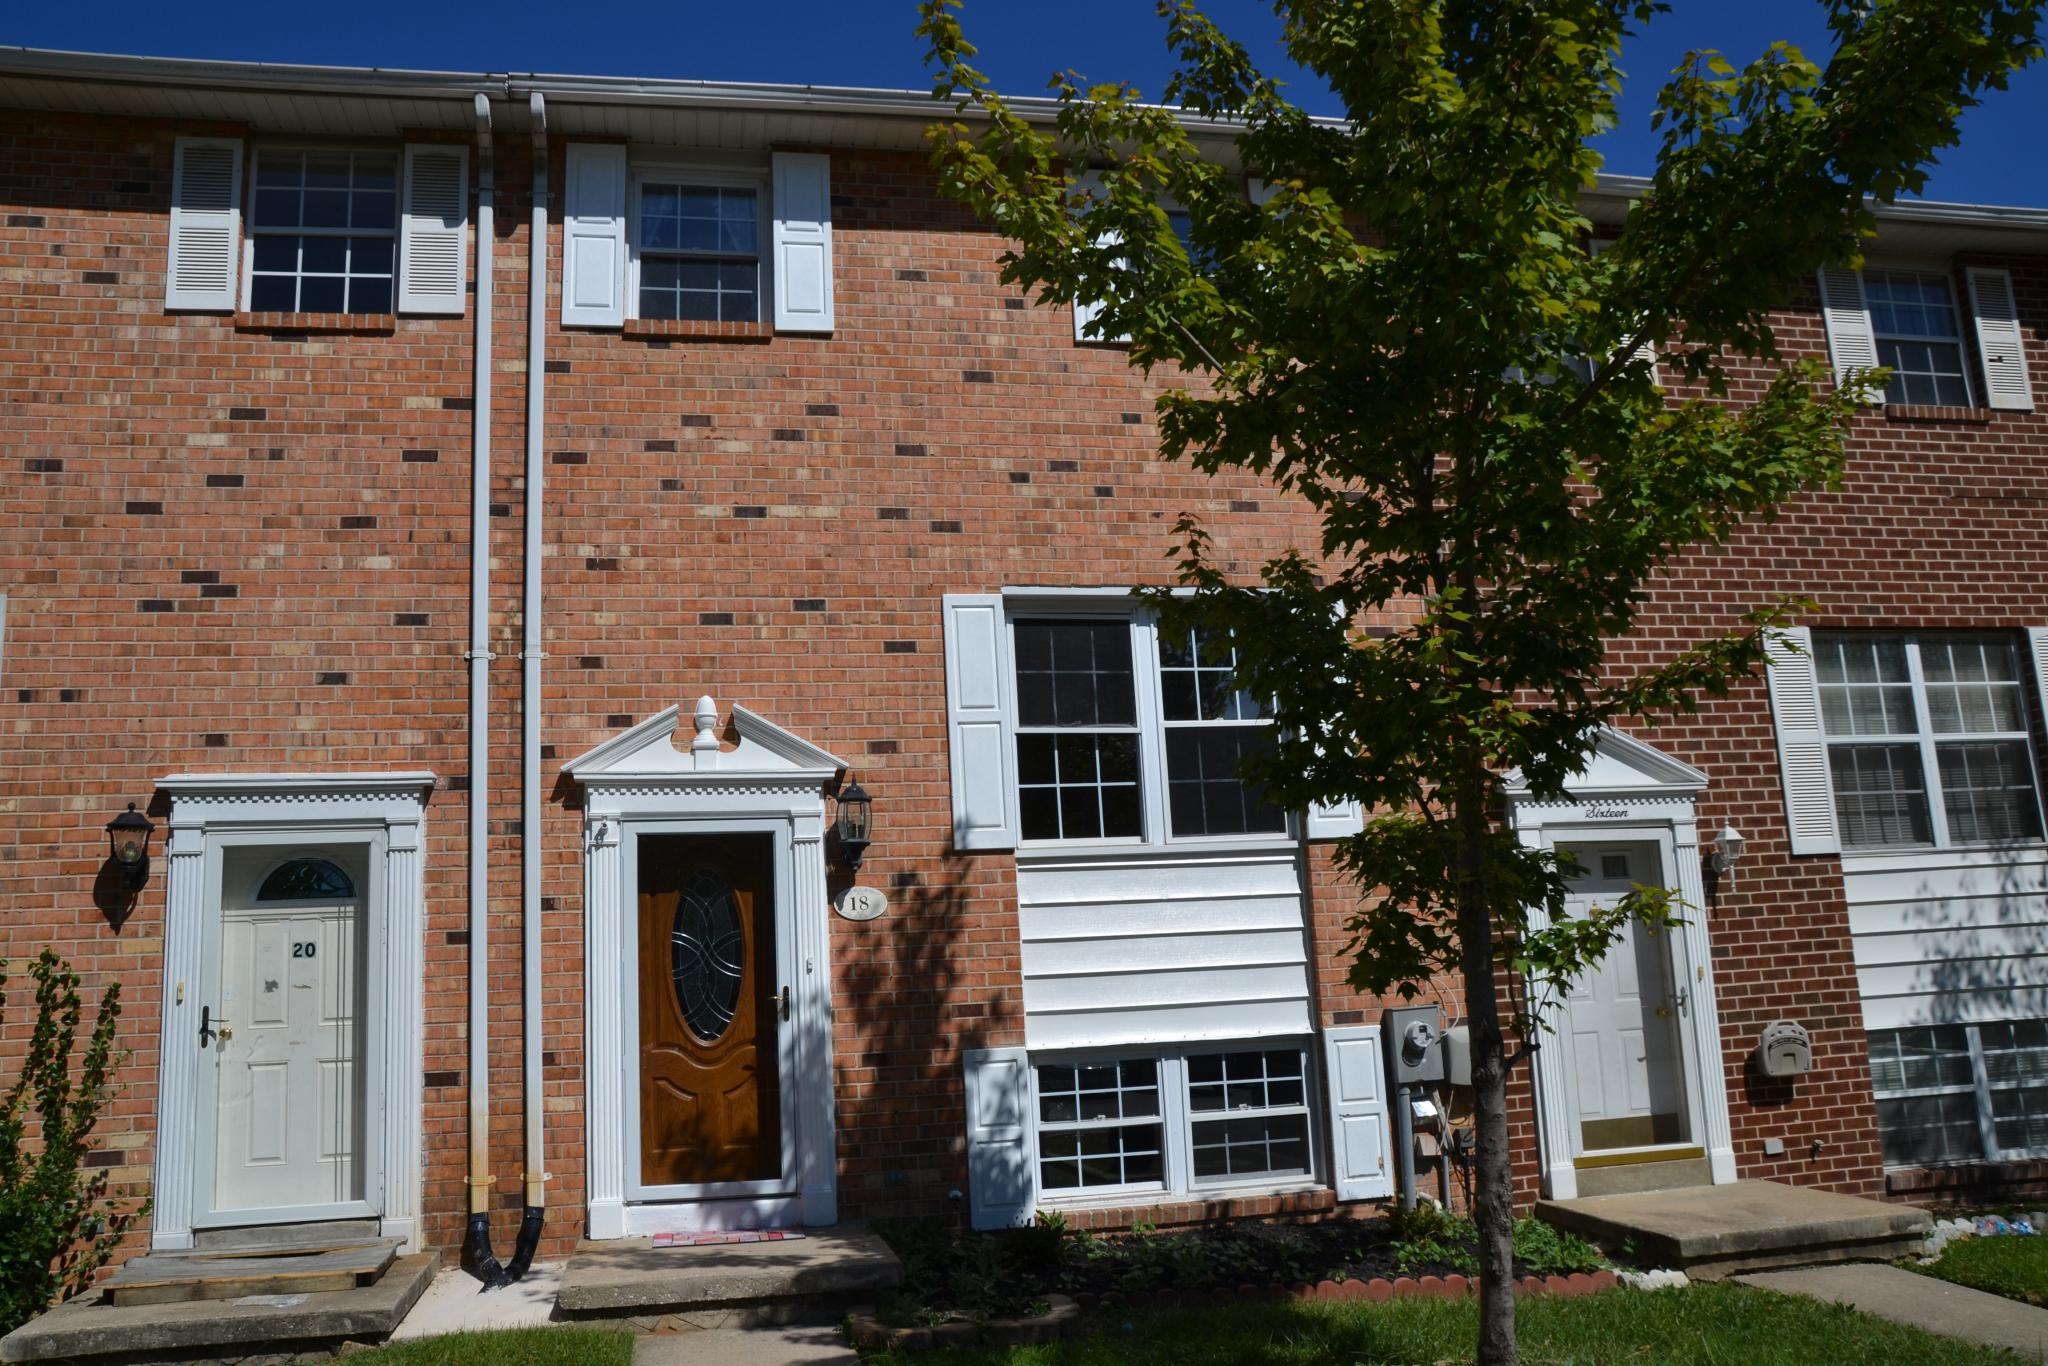 18 Talister Ct, Rosedale, MD 21237 For Rent | Trulia